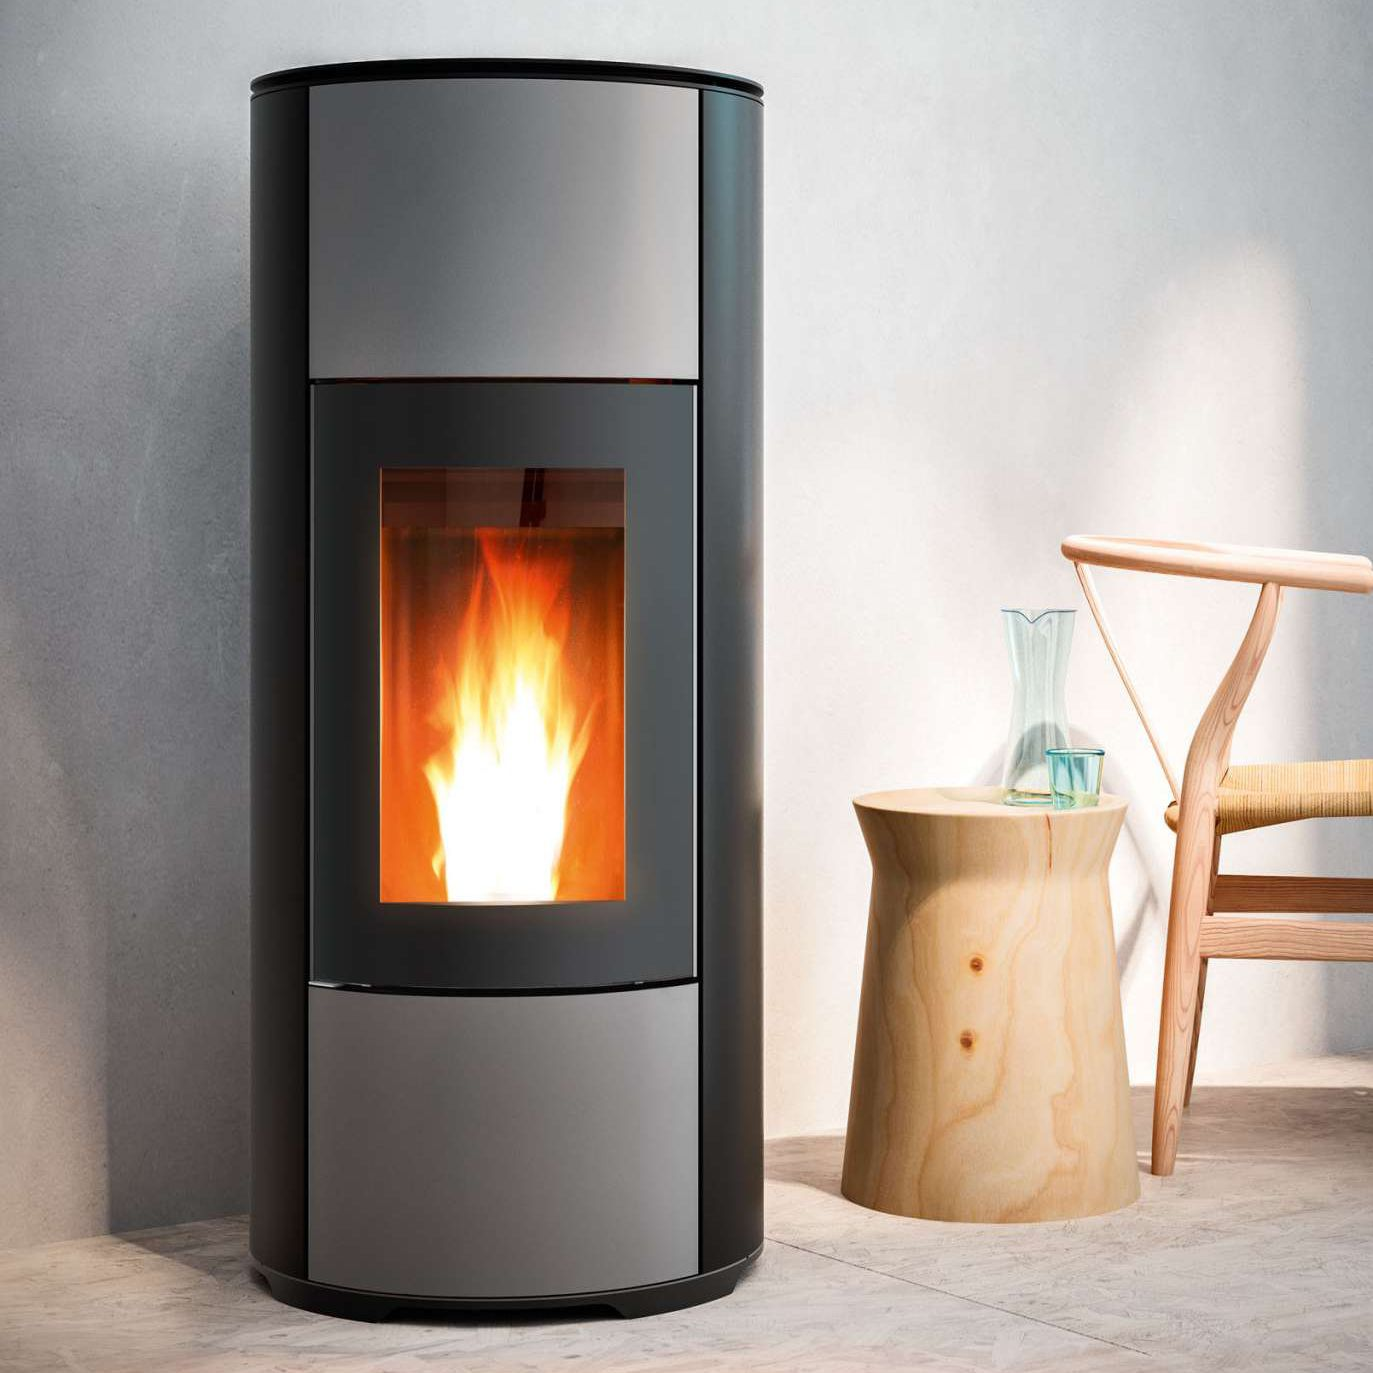 Mcz Cute Pellet Heating Stove Contemporary Corner Steel Halo Mcz